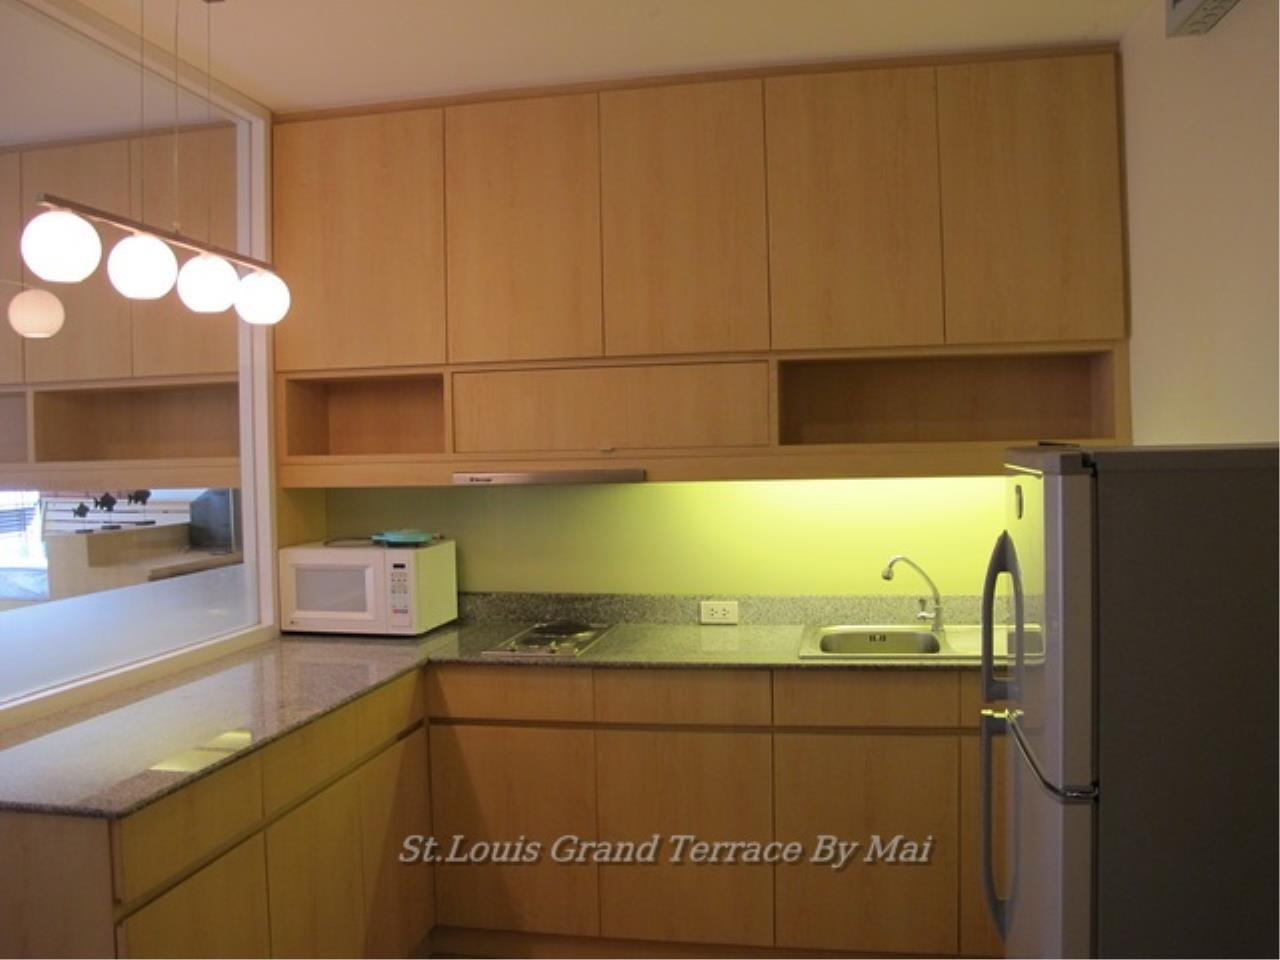 Quality Life Property Agency's For Rent Condo At St. Louis Grand Terrace 1 Bedroom 1 | 17 Floor 18, 000 THB / MONTH 6